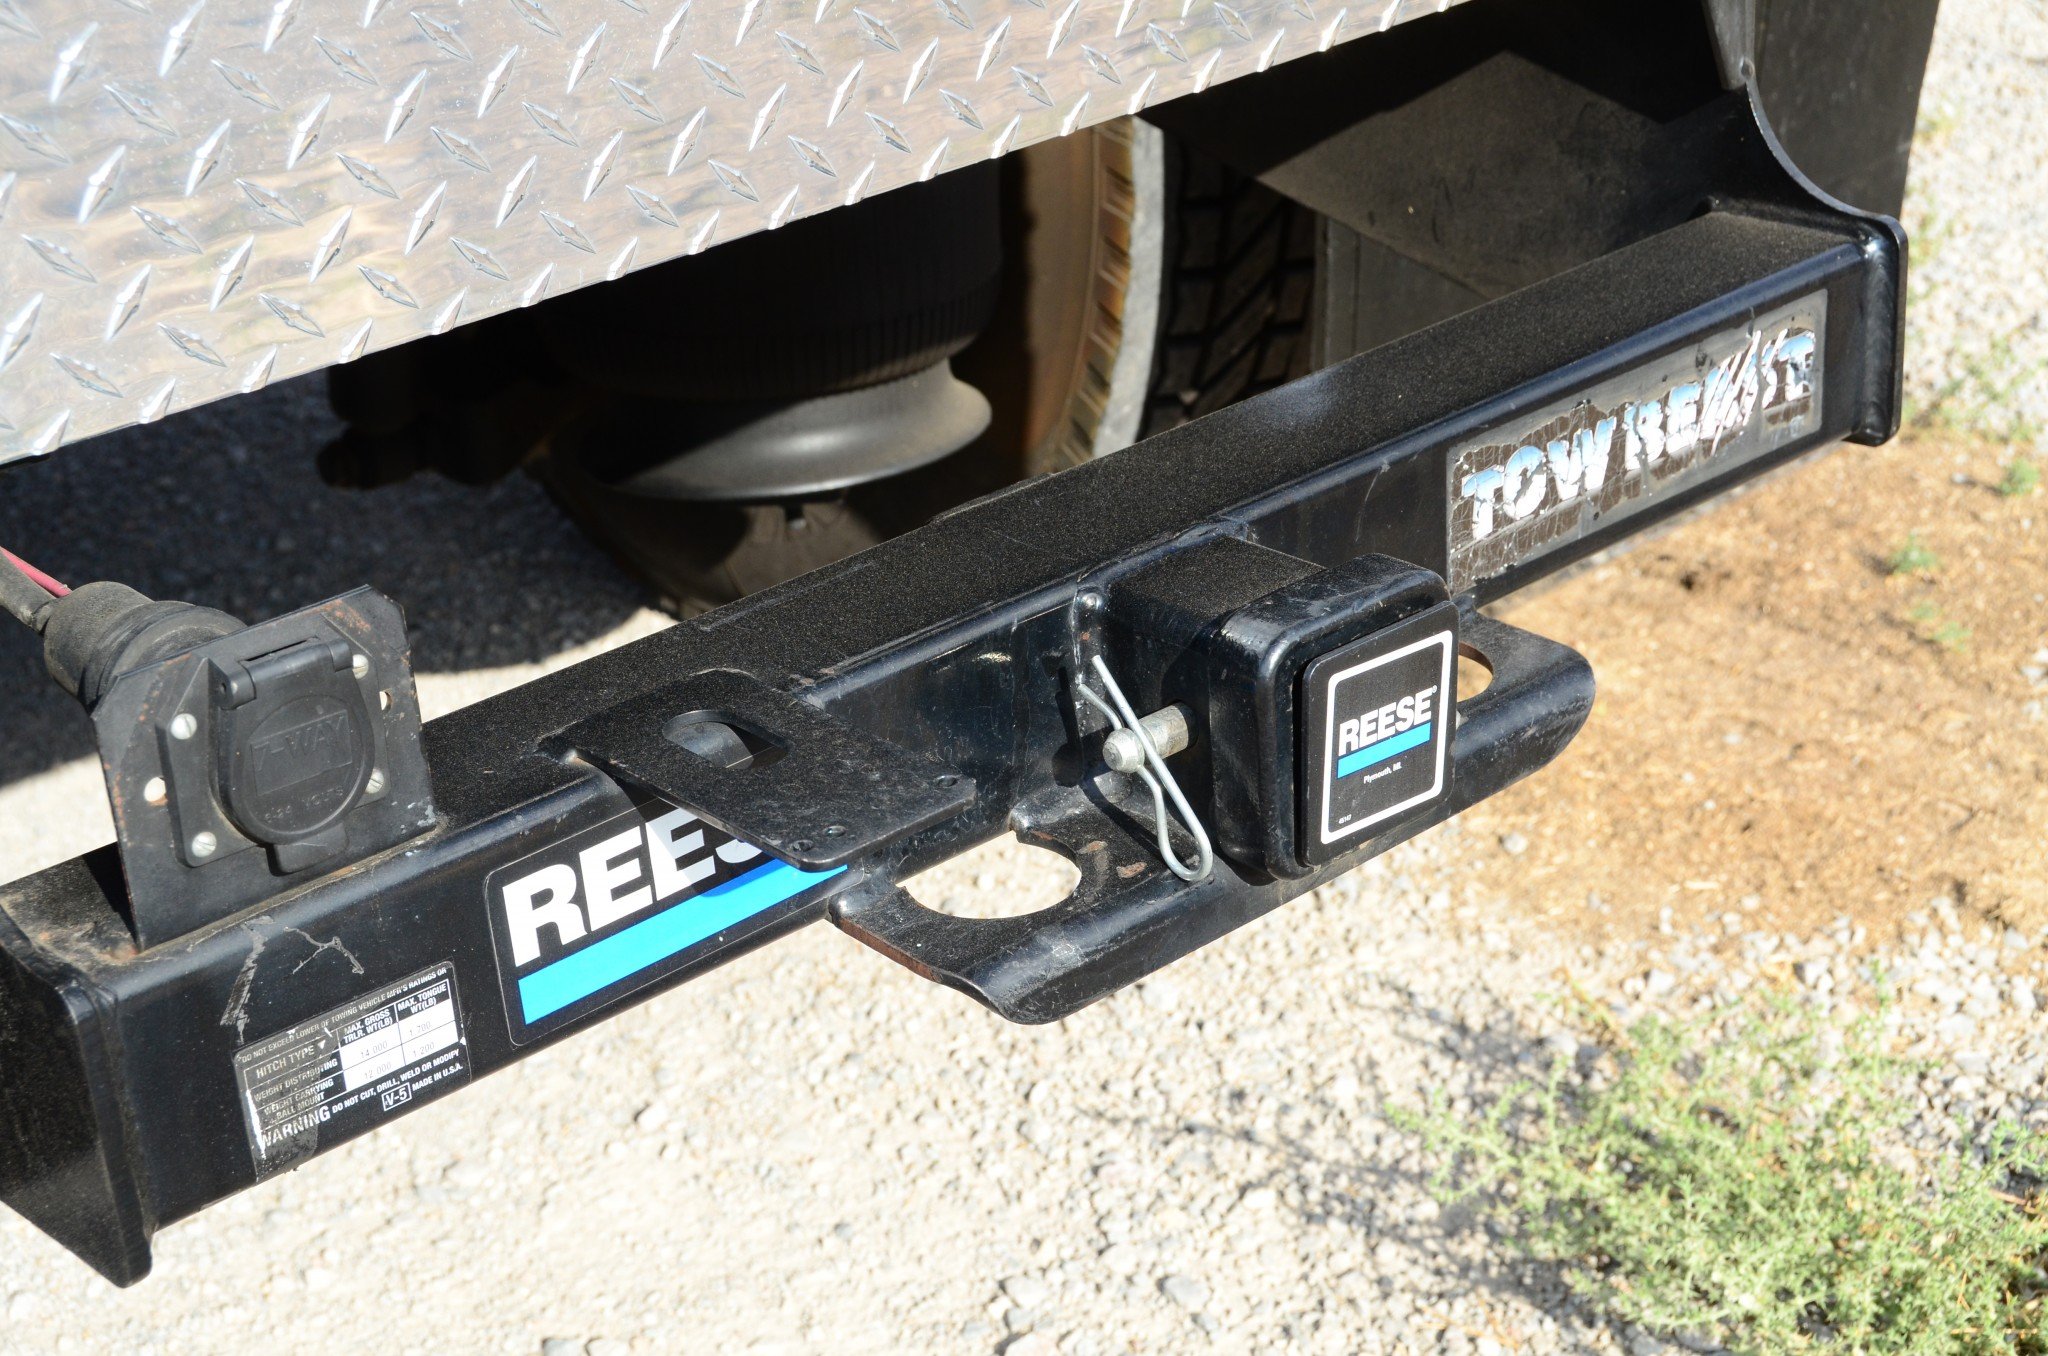 The Reese Class 5 hitch is awesome for towing a 25-foot travel trailer or 16-foot car trailer carrying a Jeep CJ-7 rock crawler.